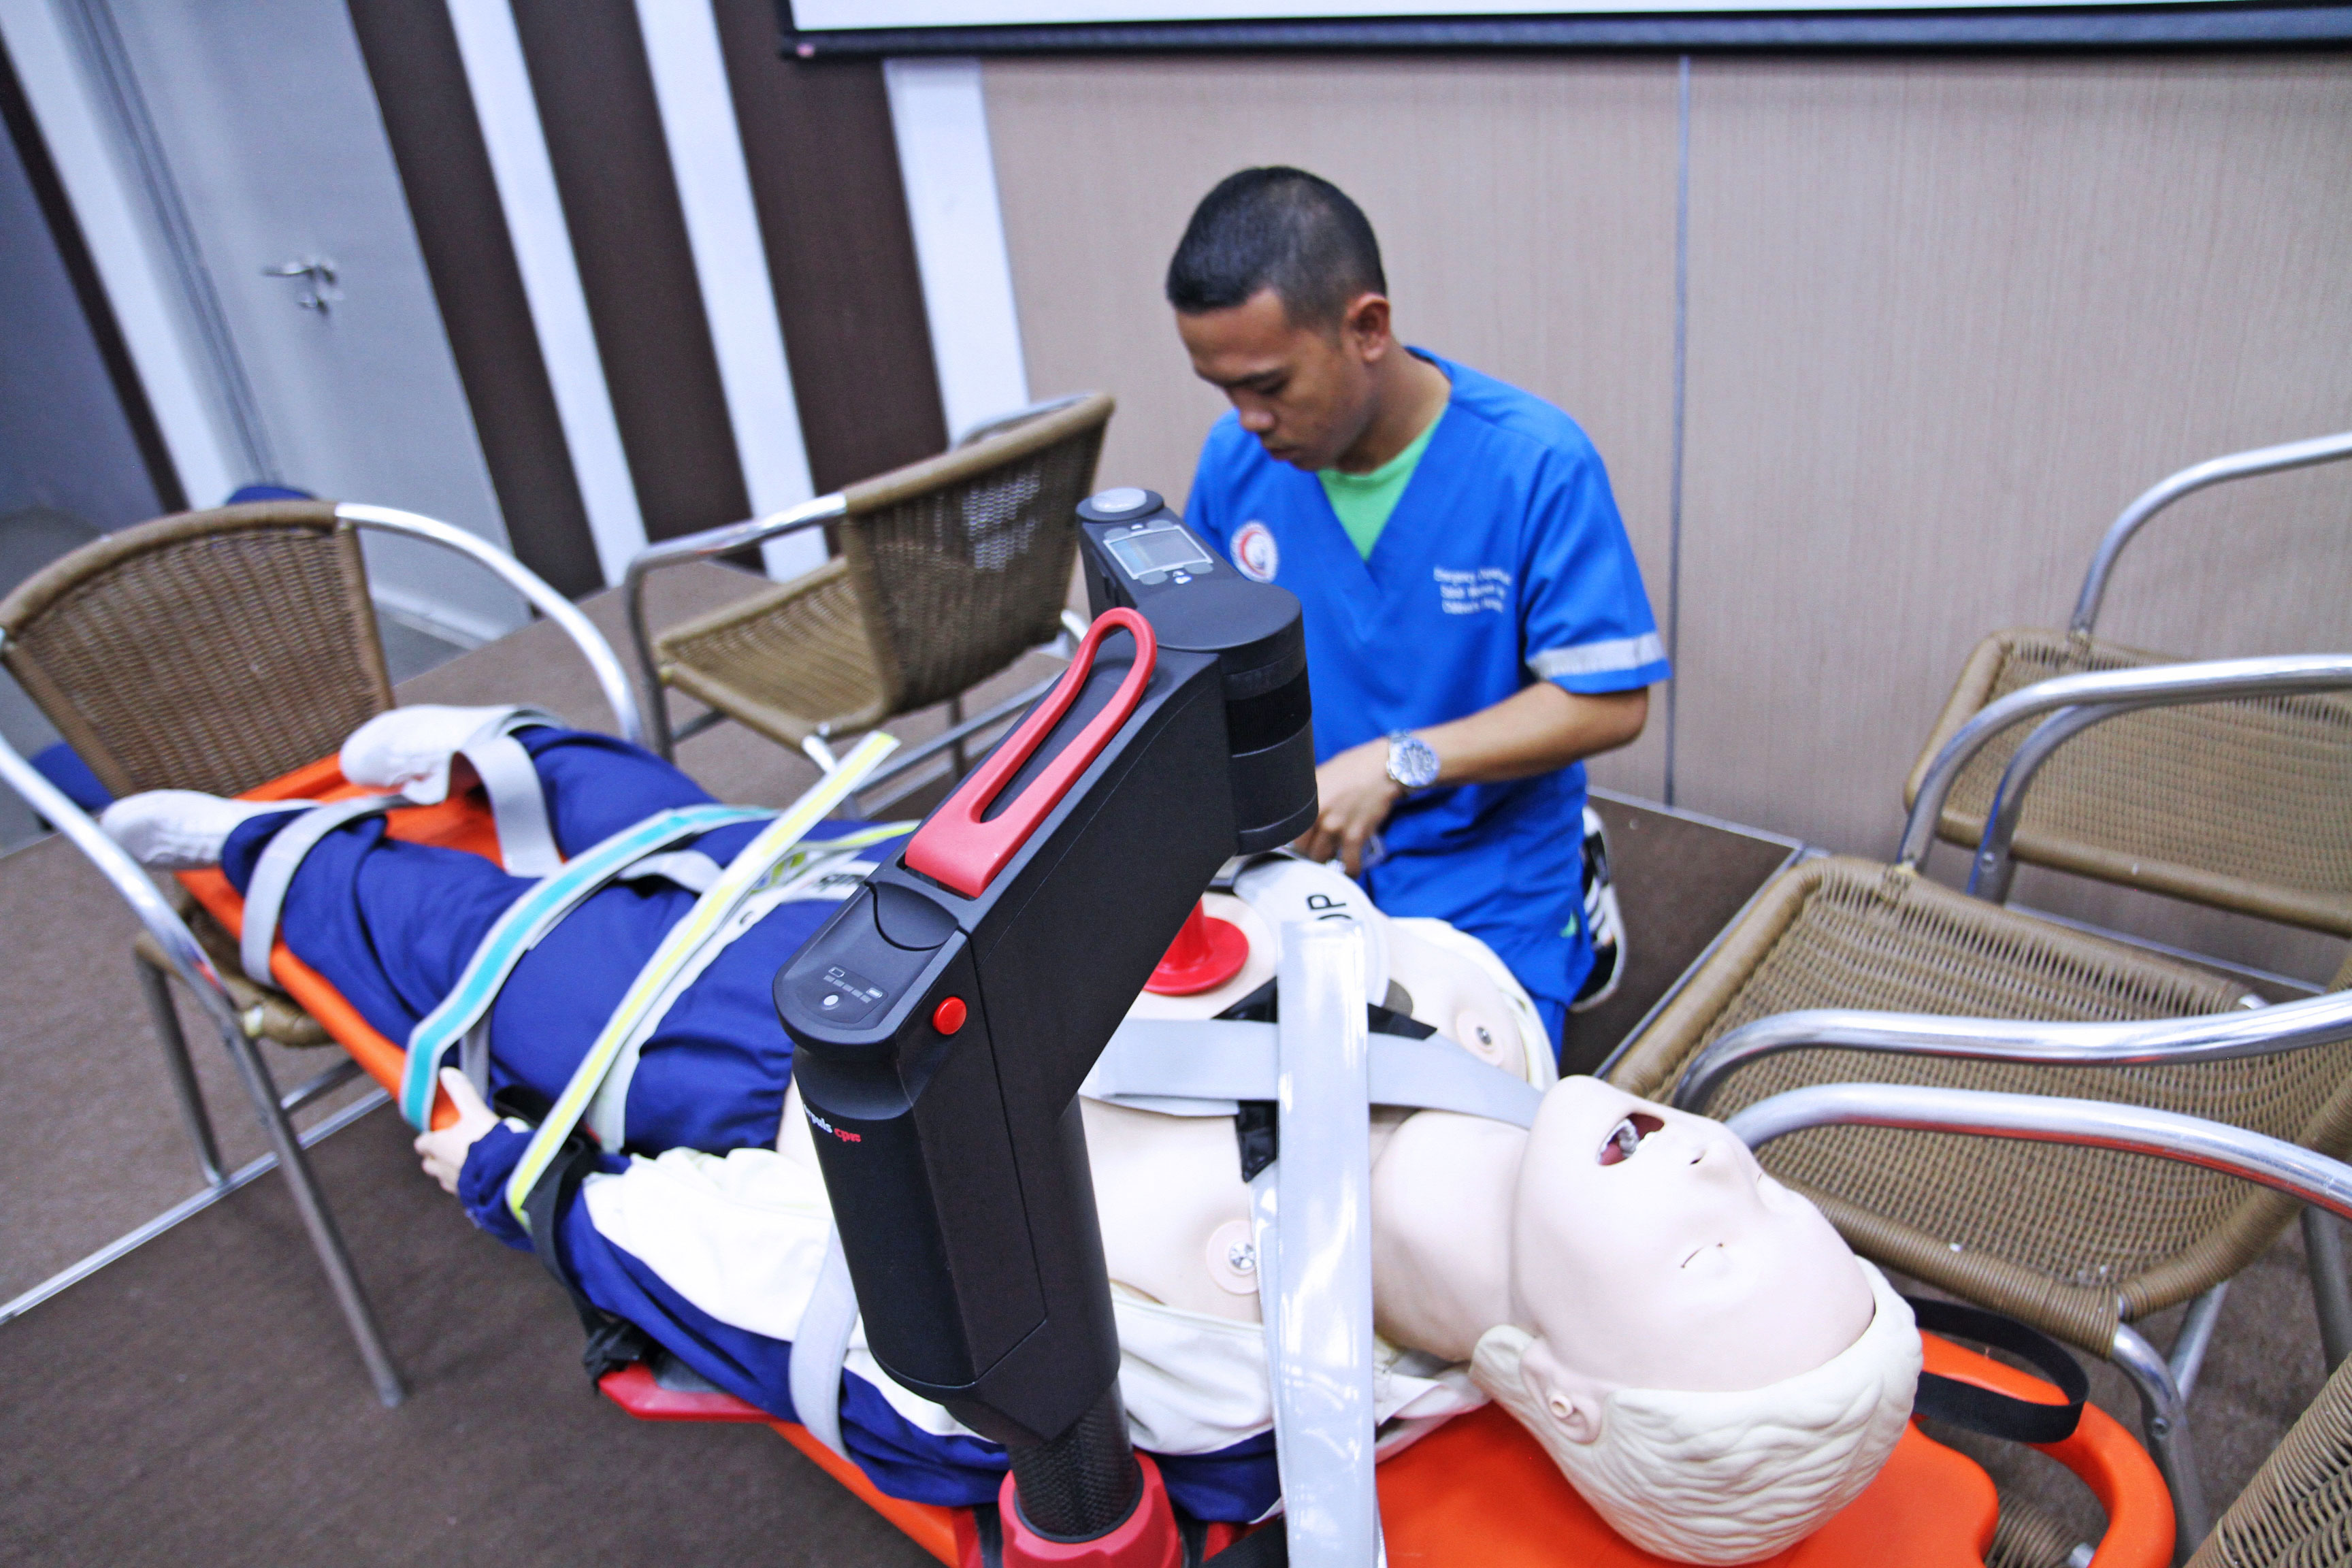 Simulation of emergency retrieval of critically ill patients